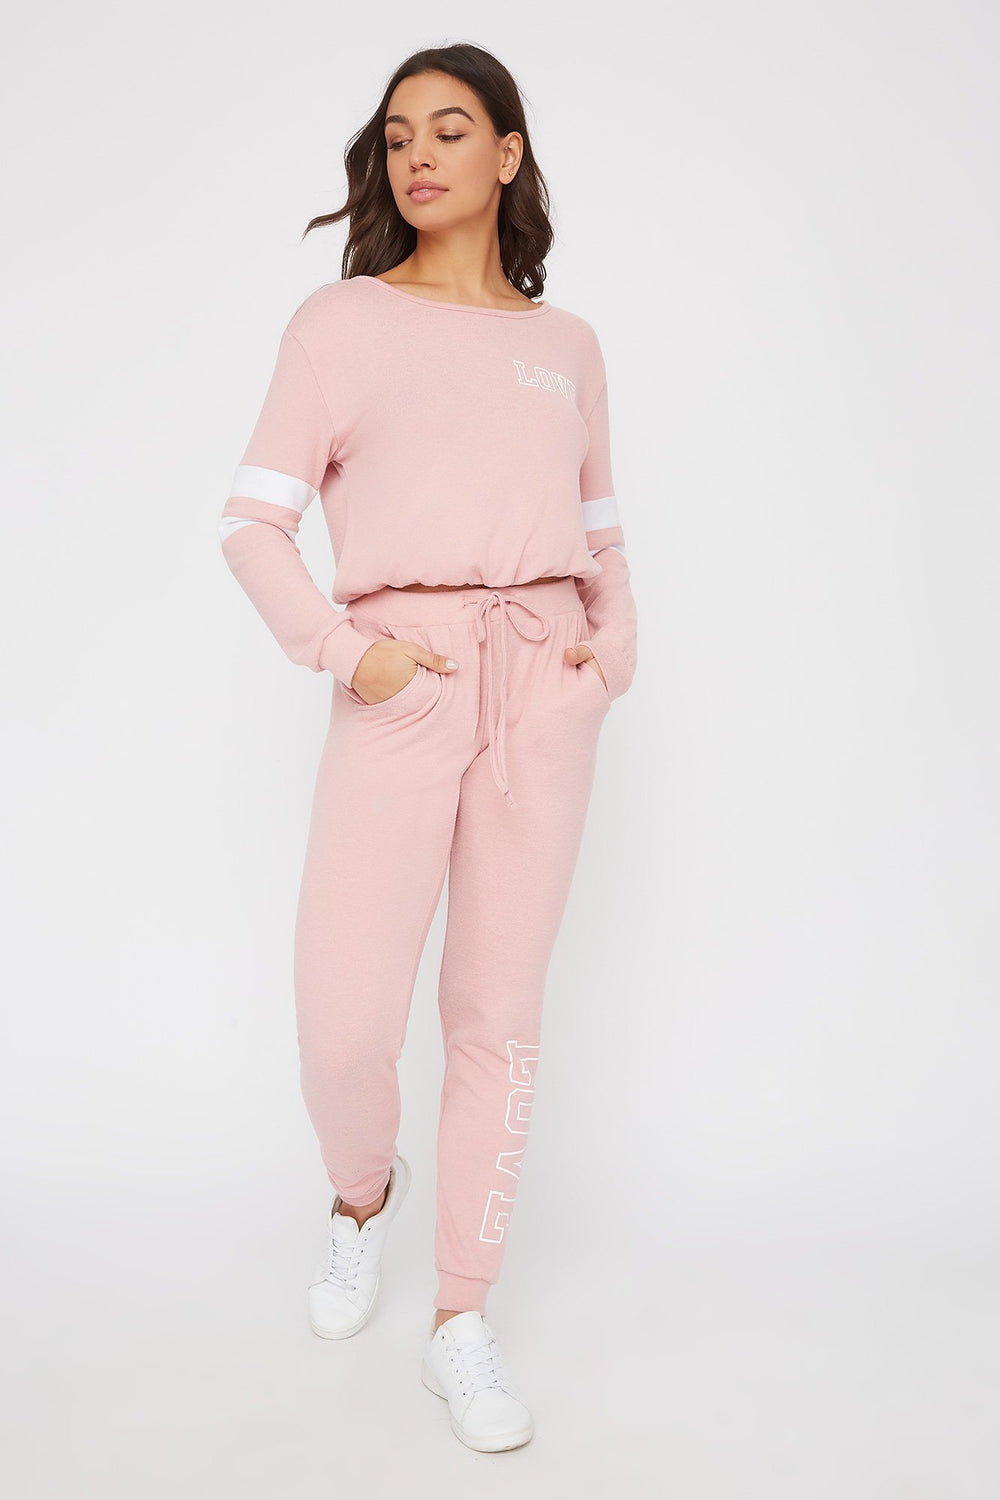 Super Soft Varsity Tie Long Sleeve Light Pink